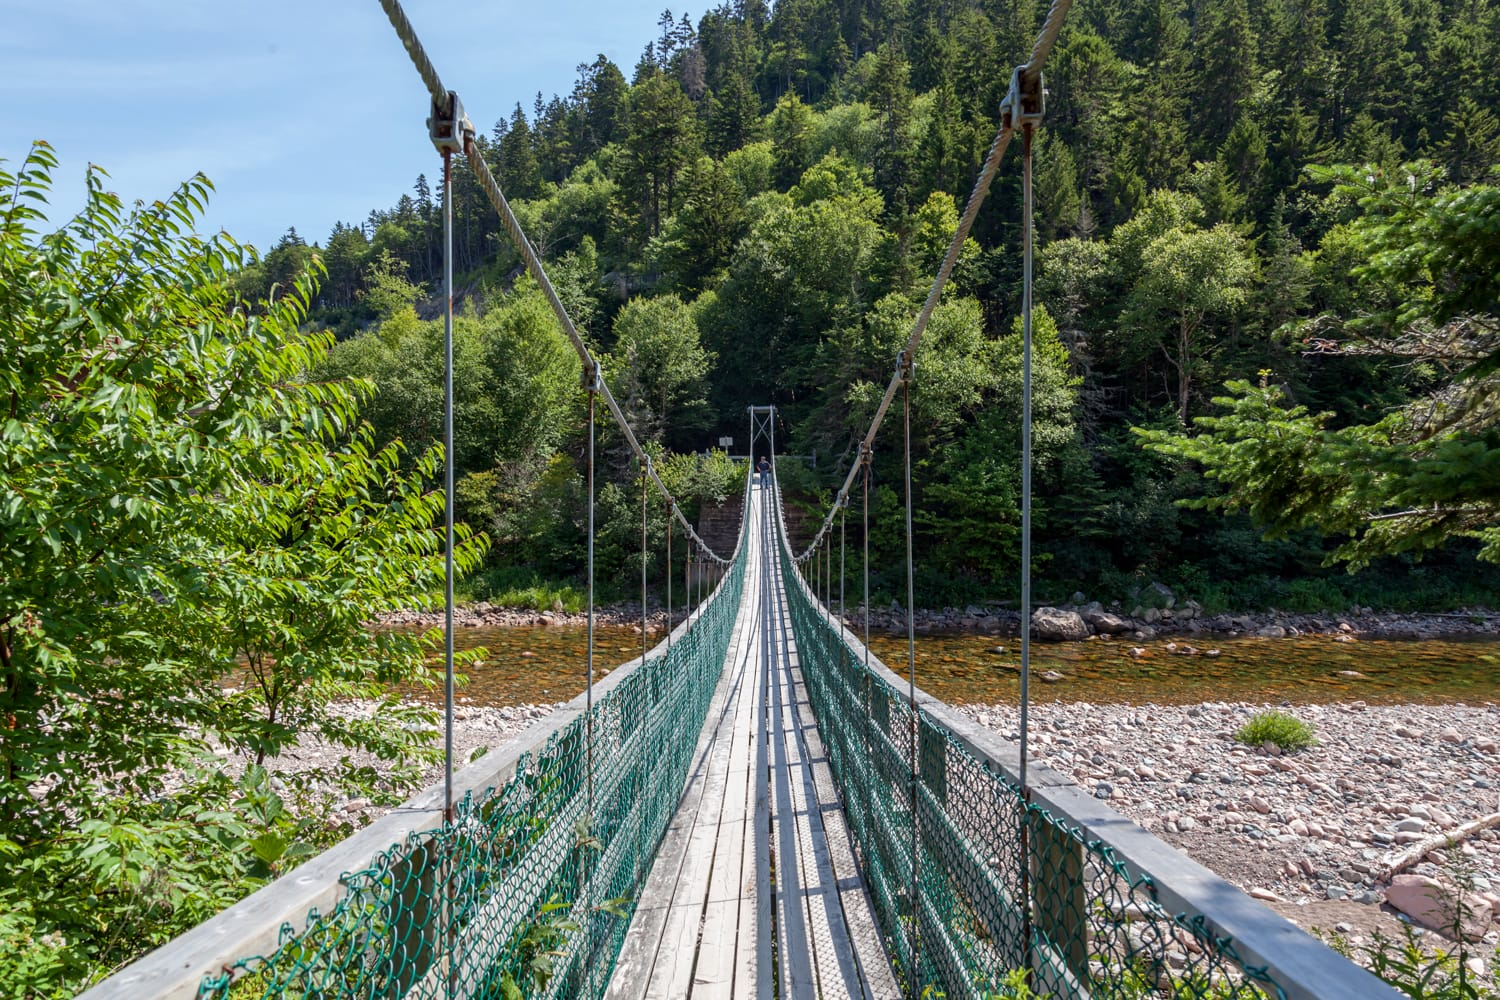 Suspension bridge crossing the Salmon River in the Fundy National Park New Brunswick Canada